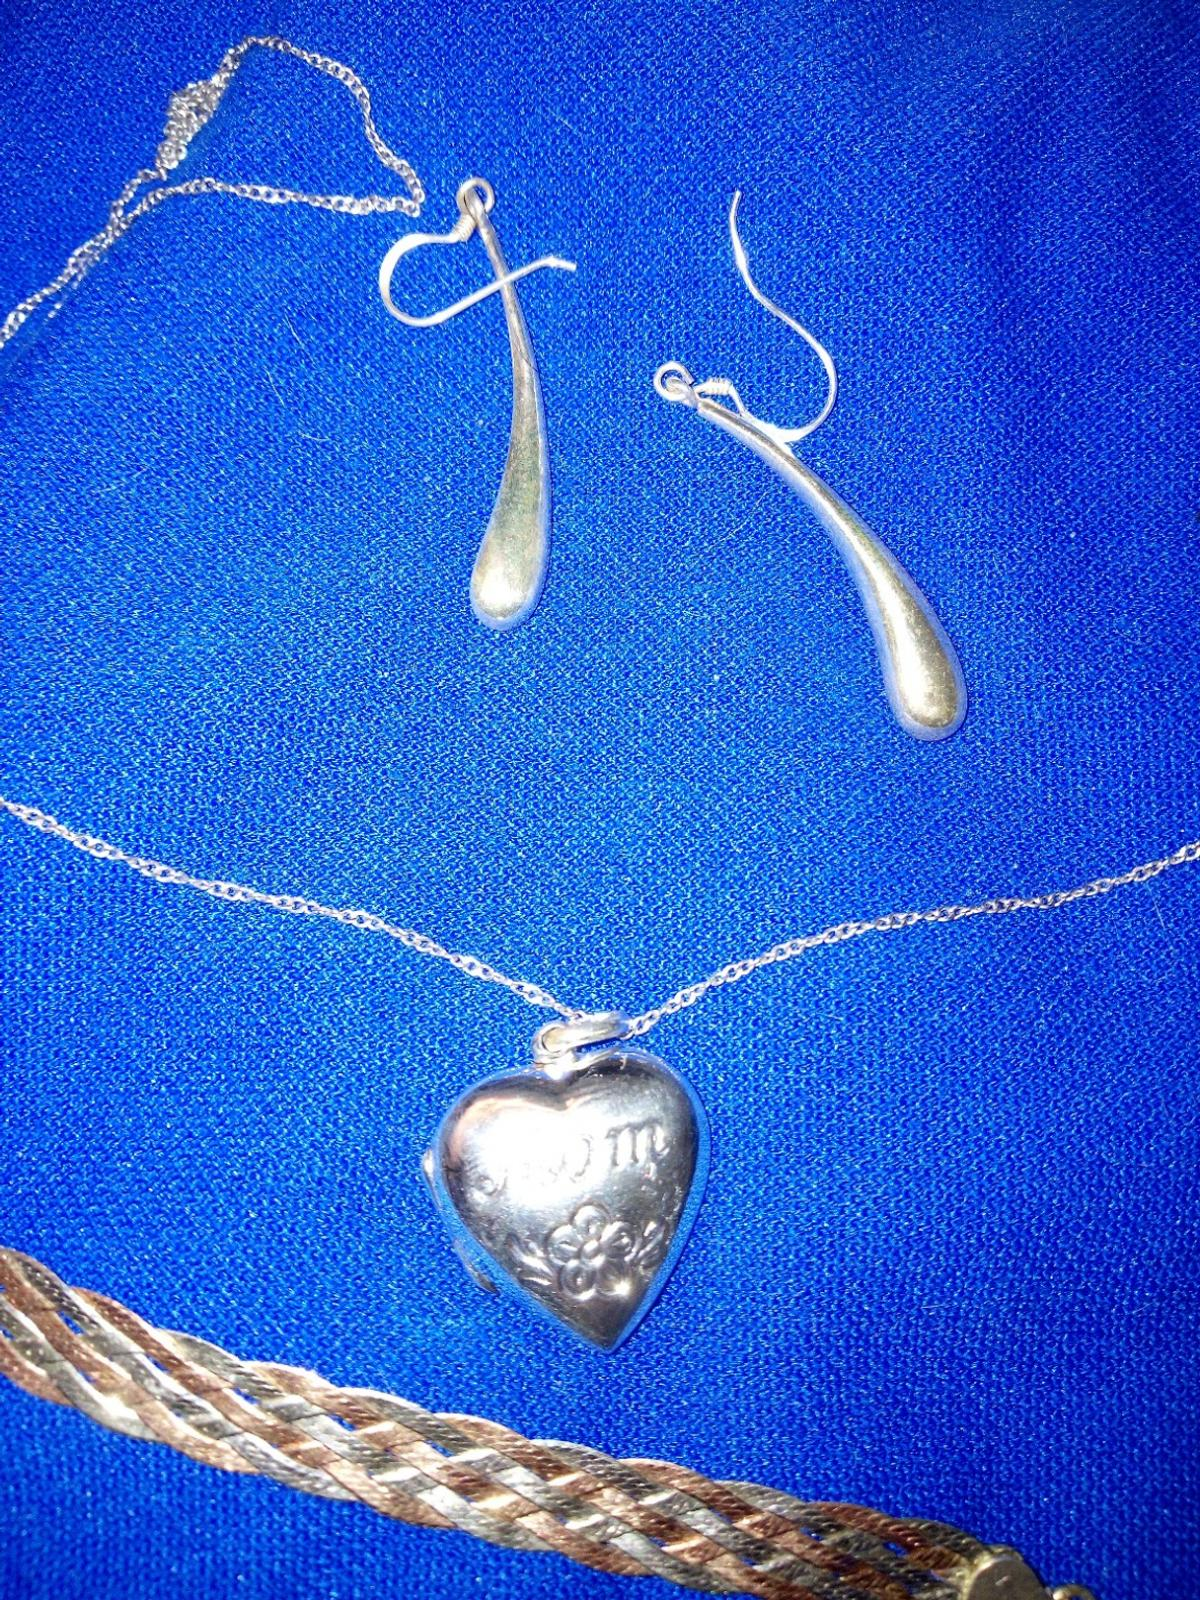 sterling silver bundle a number of rings chains bracelet and pair of earrings £59 for all can sell separate